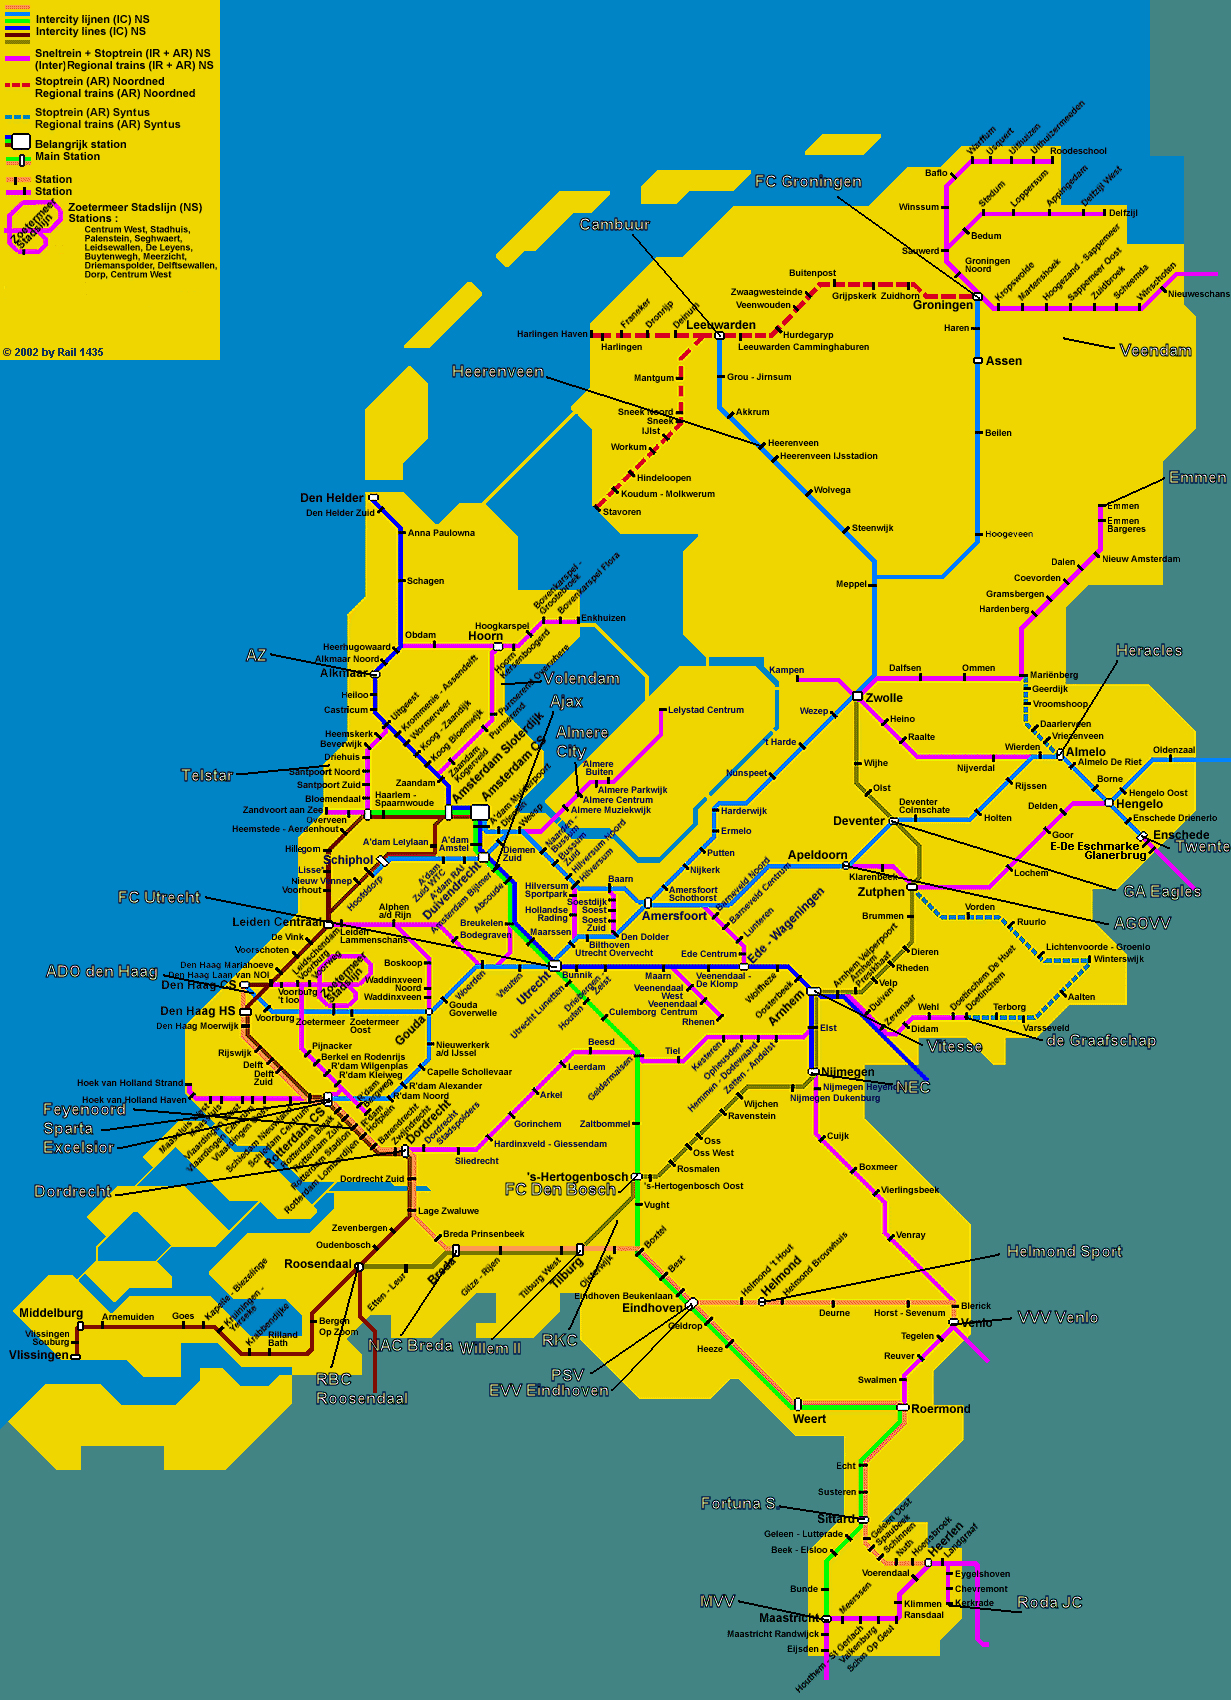 Detailed train map of Netherlands Holland Netherlands Europe